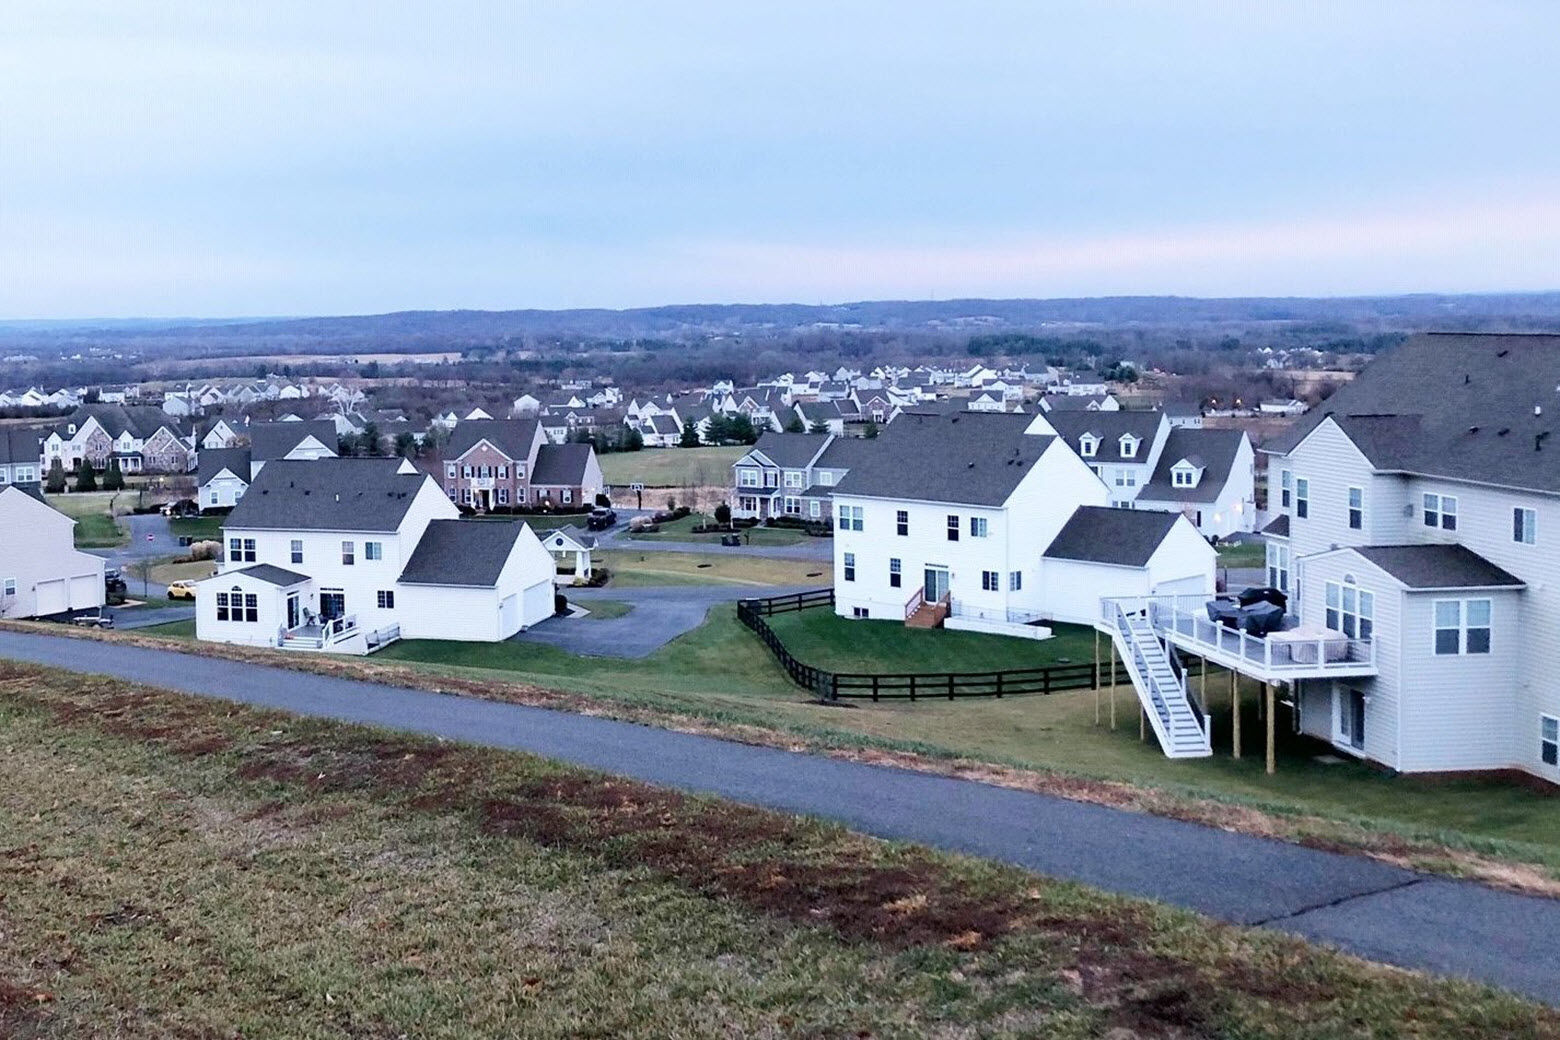 Loudoun Co. takes step forward to help homeowners beleaguered by flooding